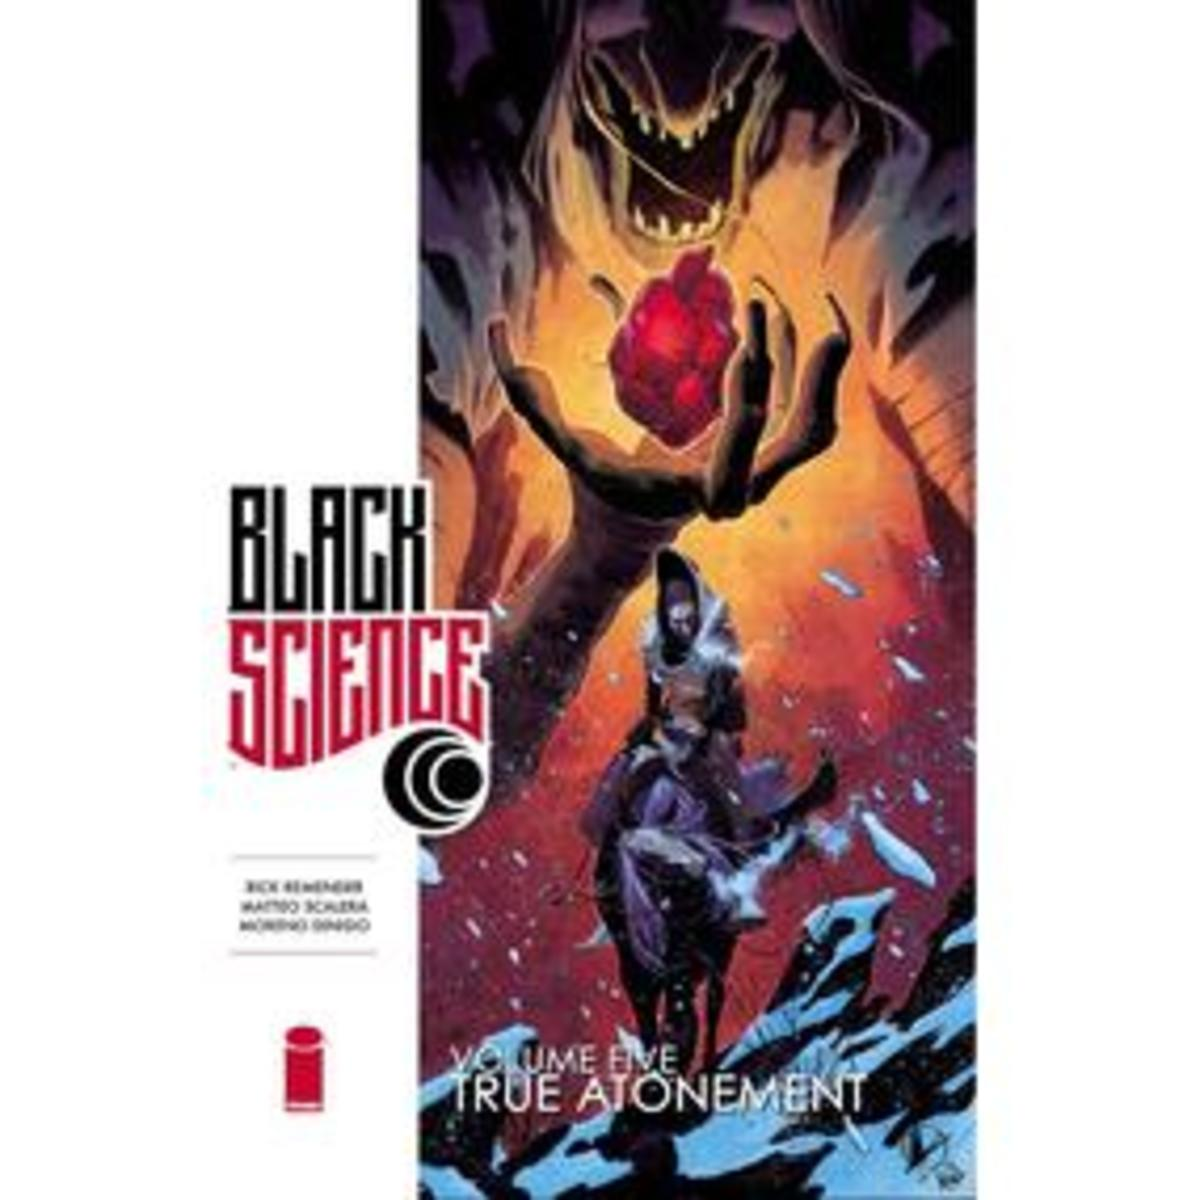 Cover art of Black Science, Volume 5.